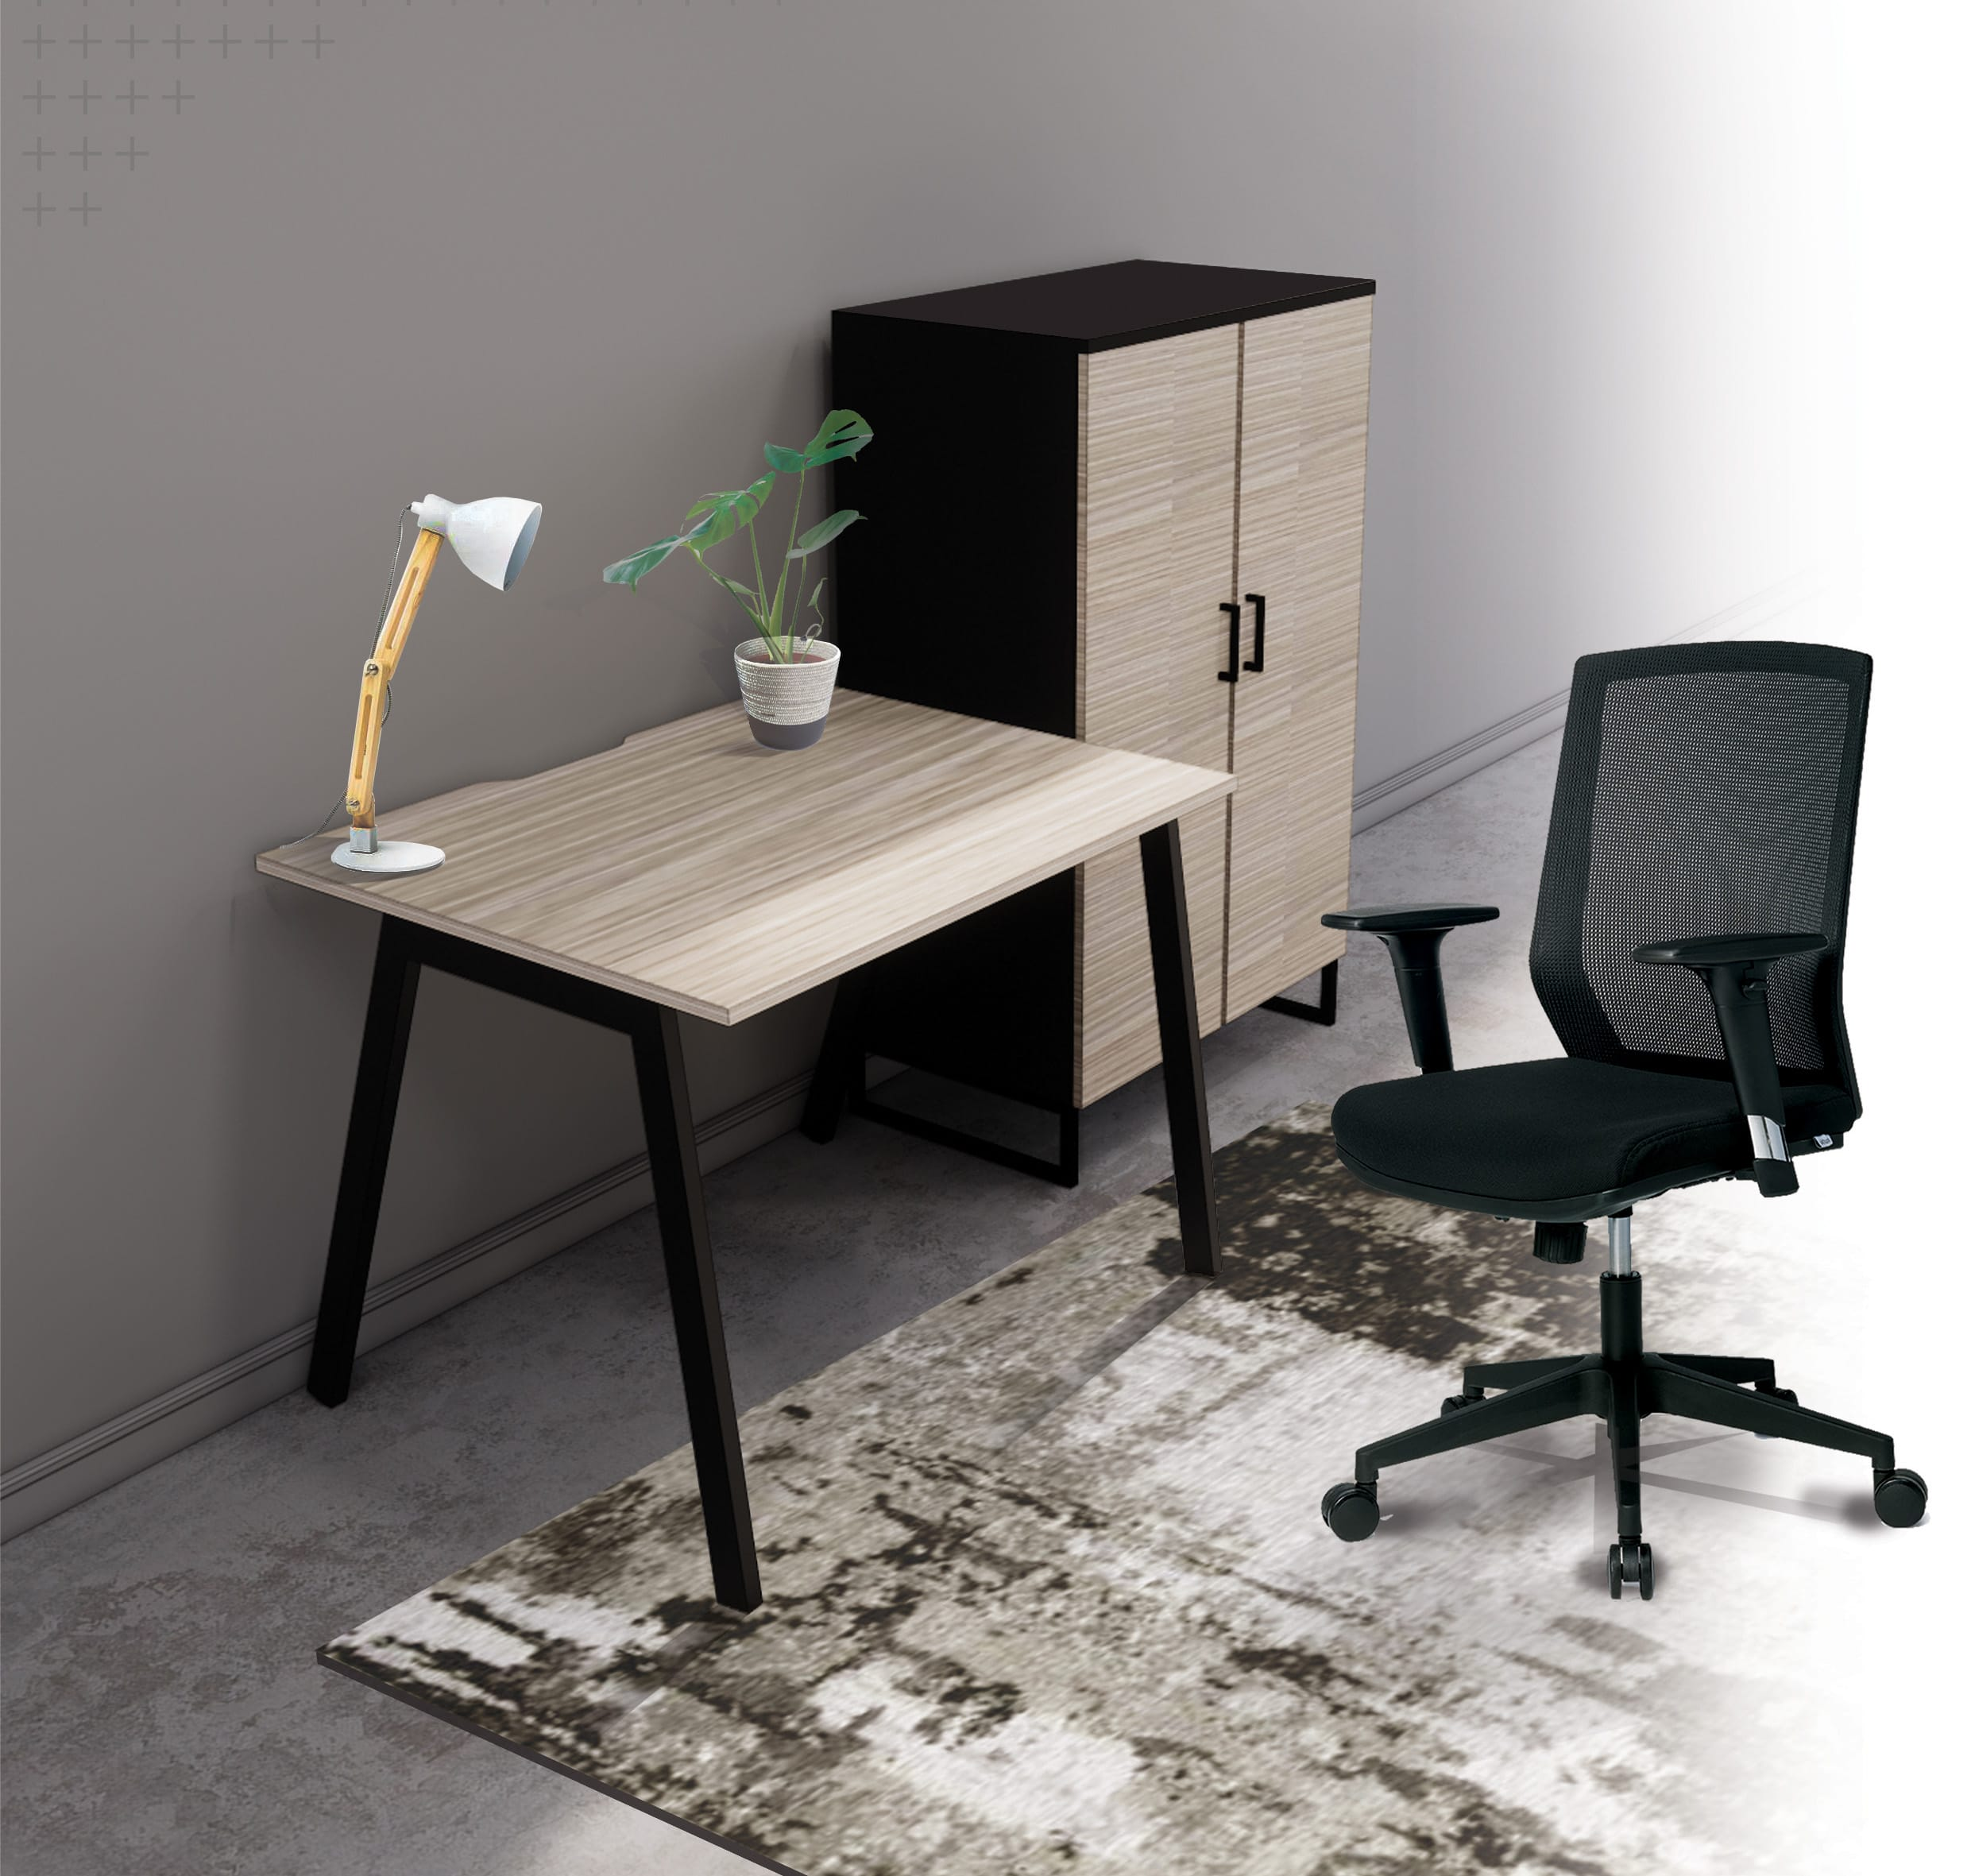 Home office set up with a wooden desk with steel frame, a chair and cupboard with wooden doors